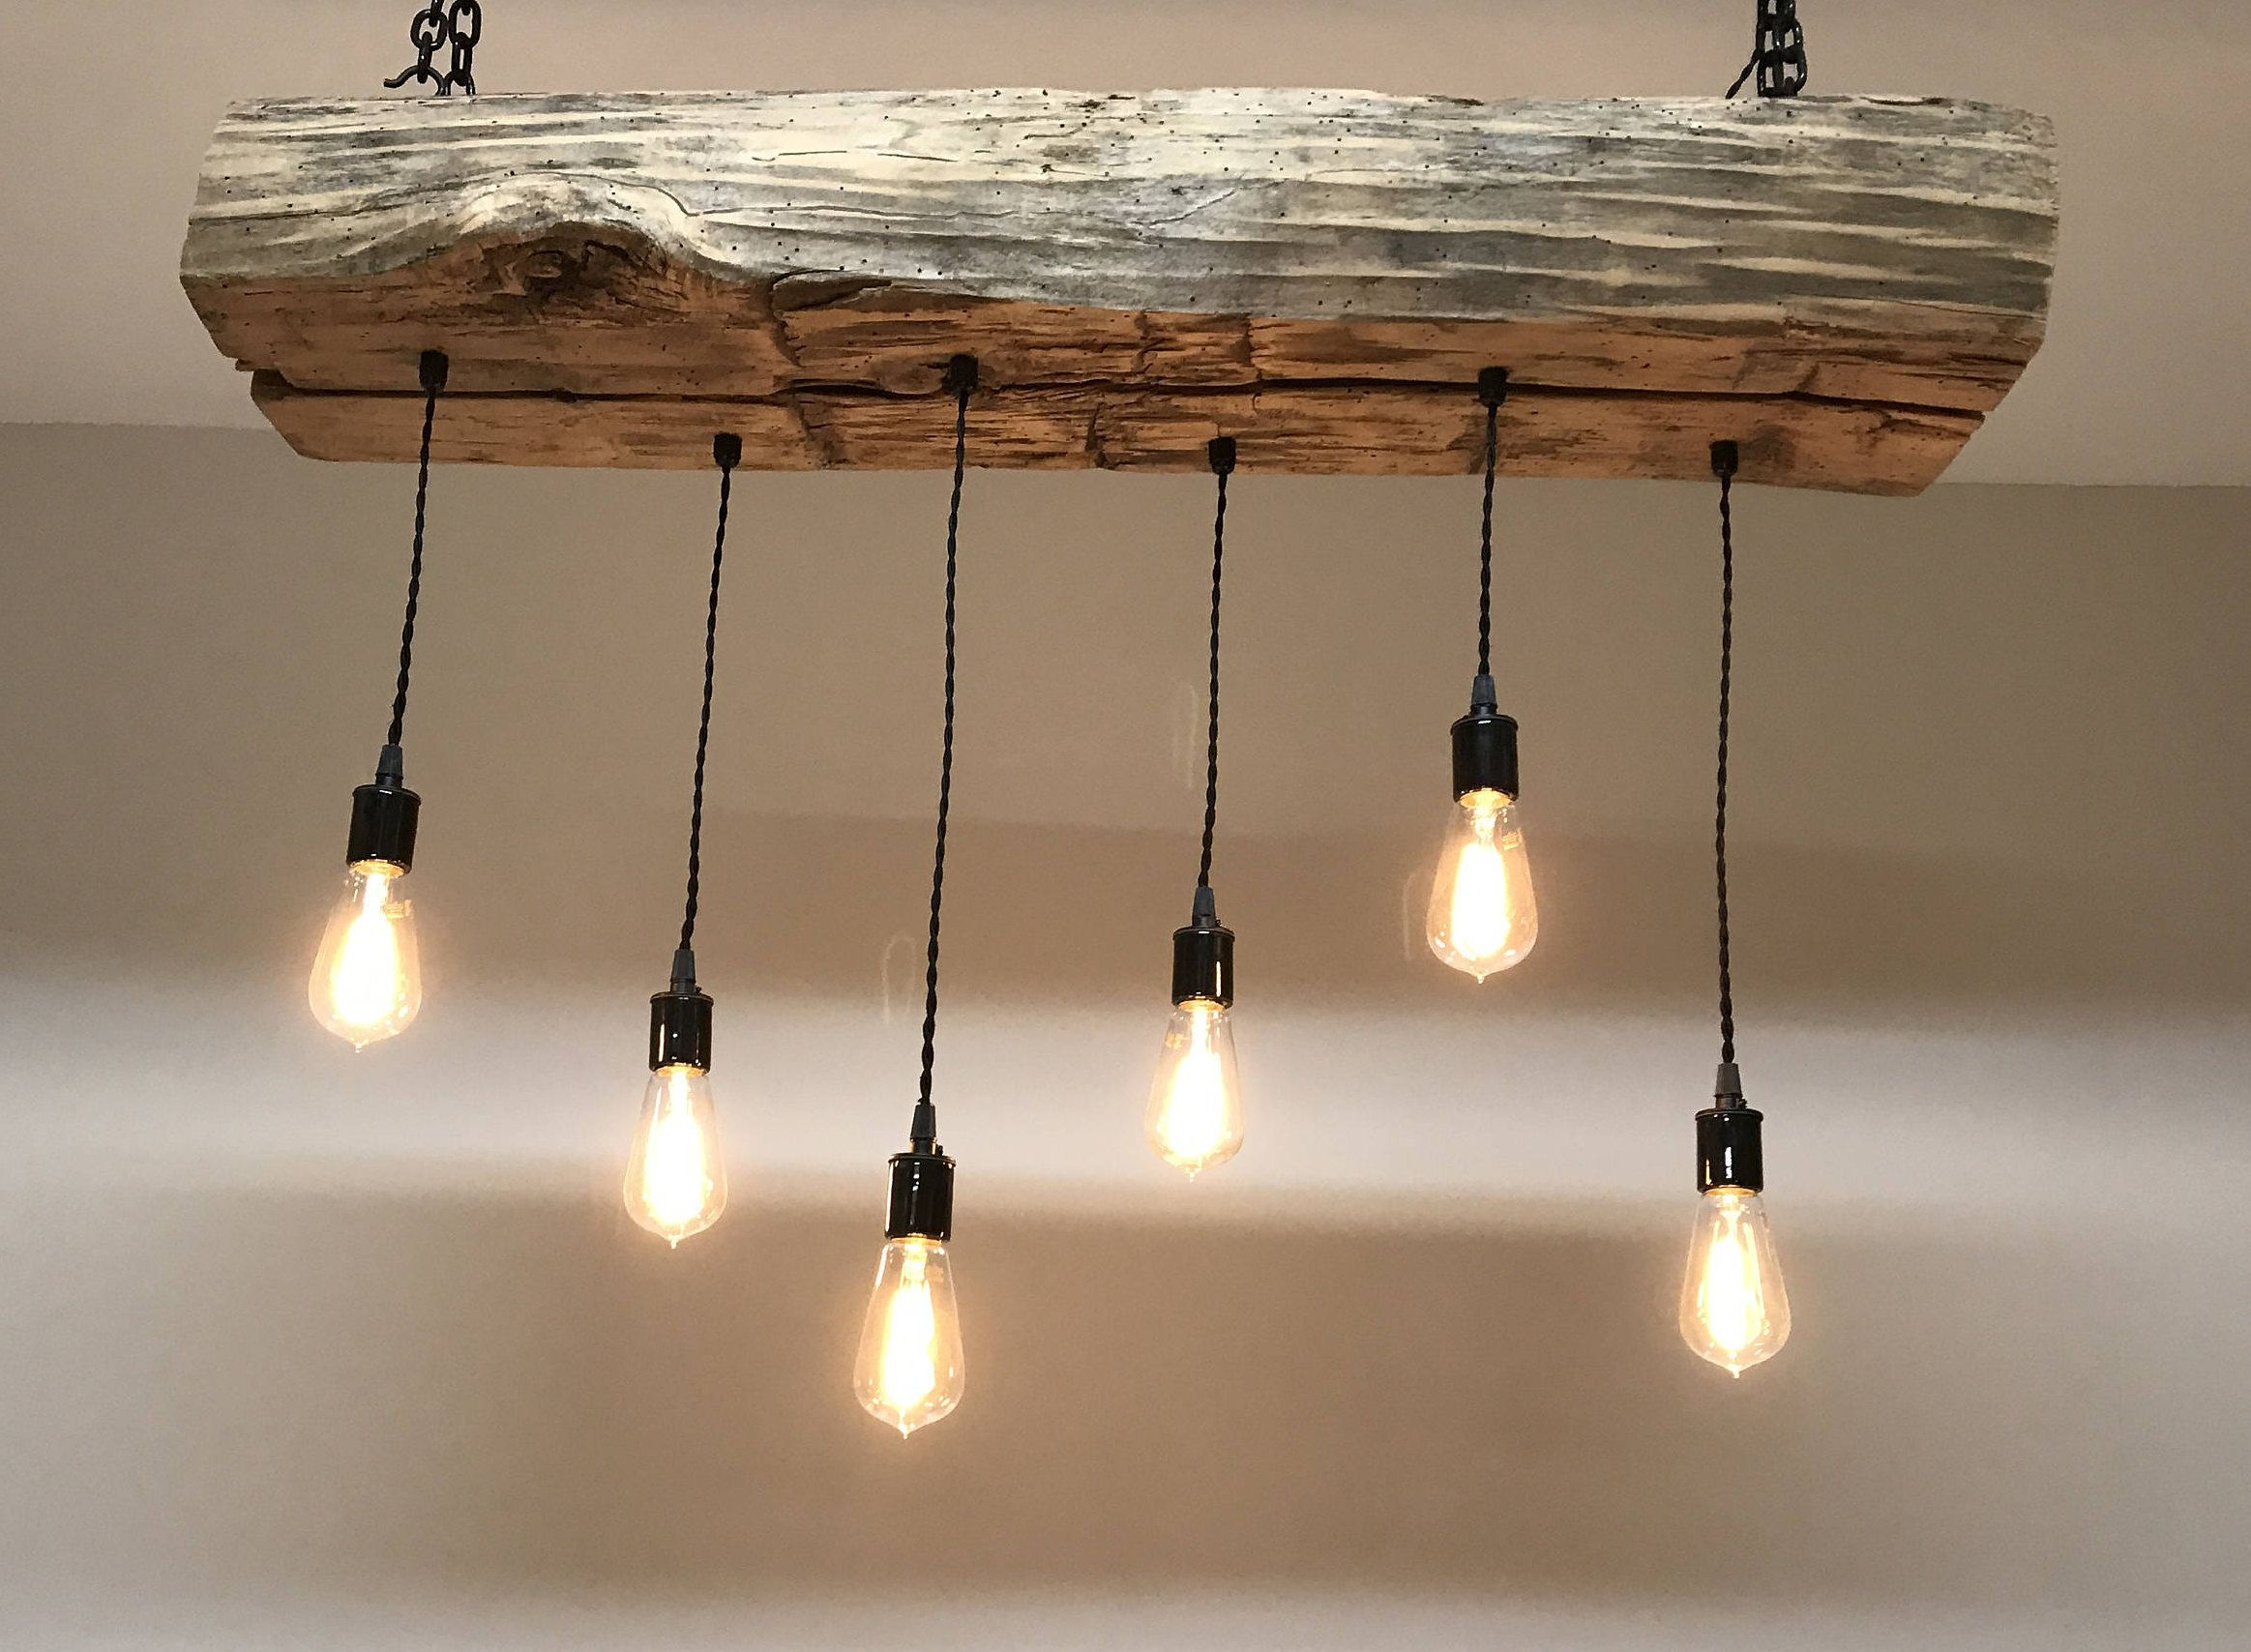 ltd plumbing complete product ceiling globes multi bakelite lamp vintage light chandelier and bulb pipe category selection fittings pty shop edison